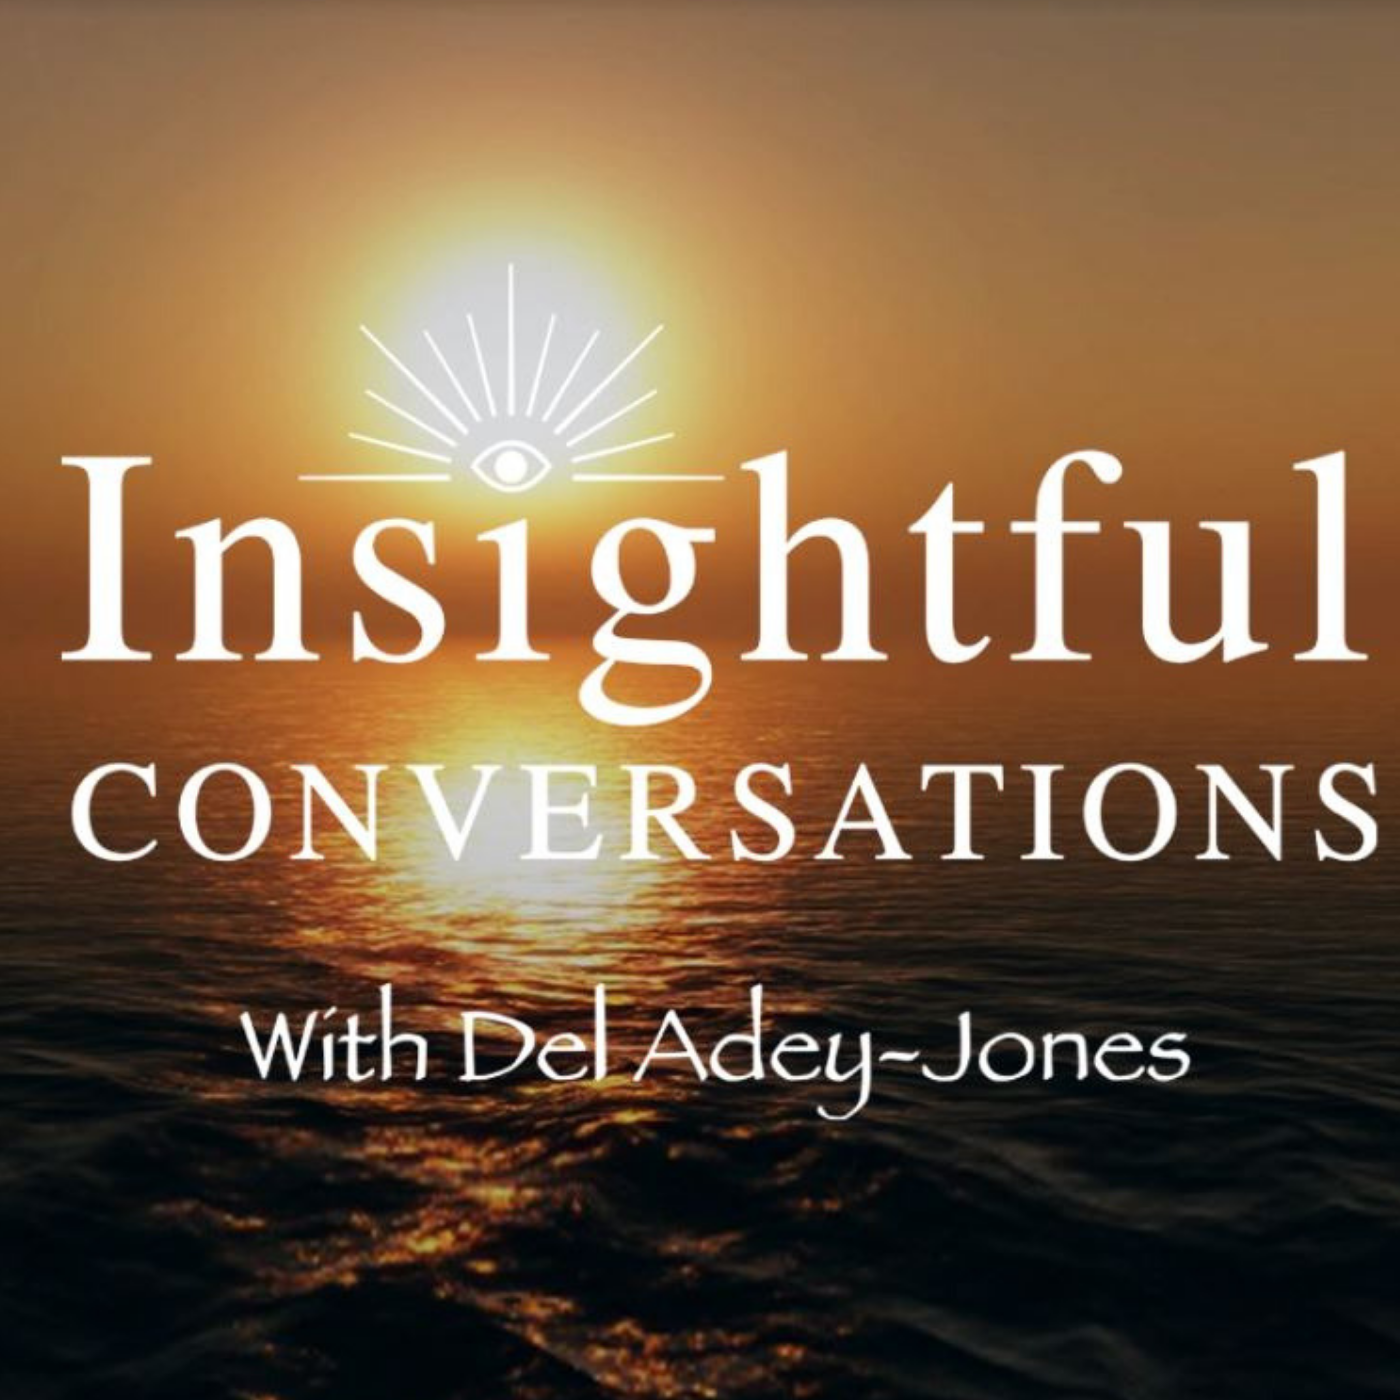 Insightful Converstaions with Del-Adey Jones